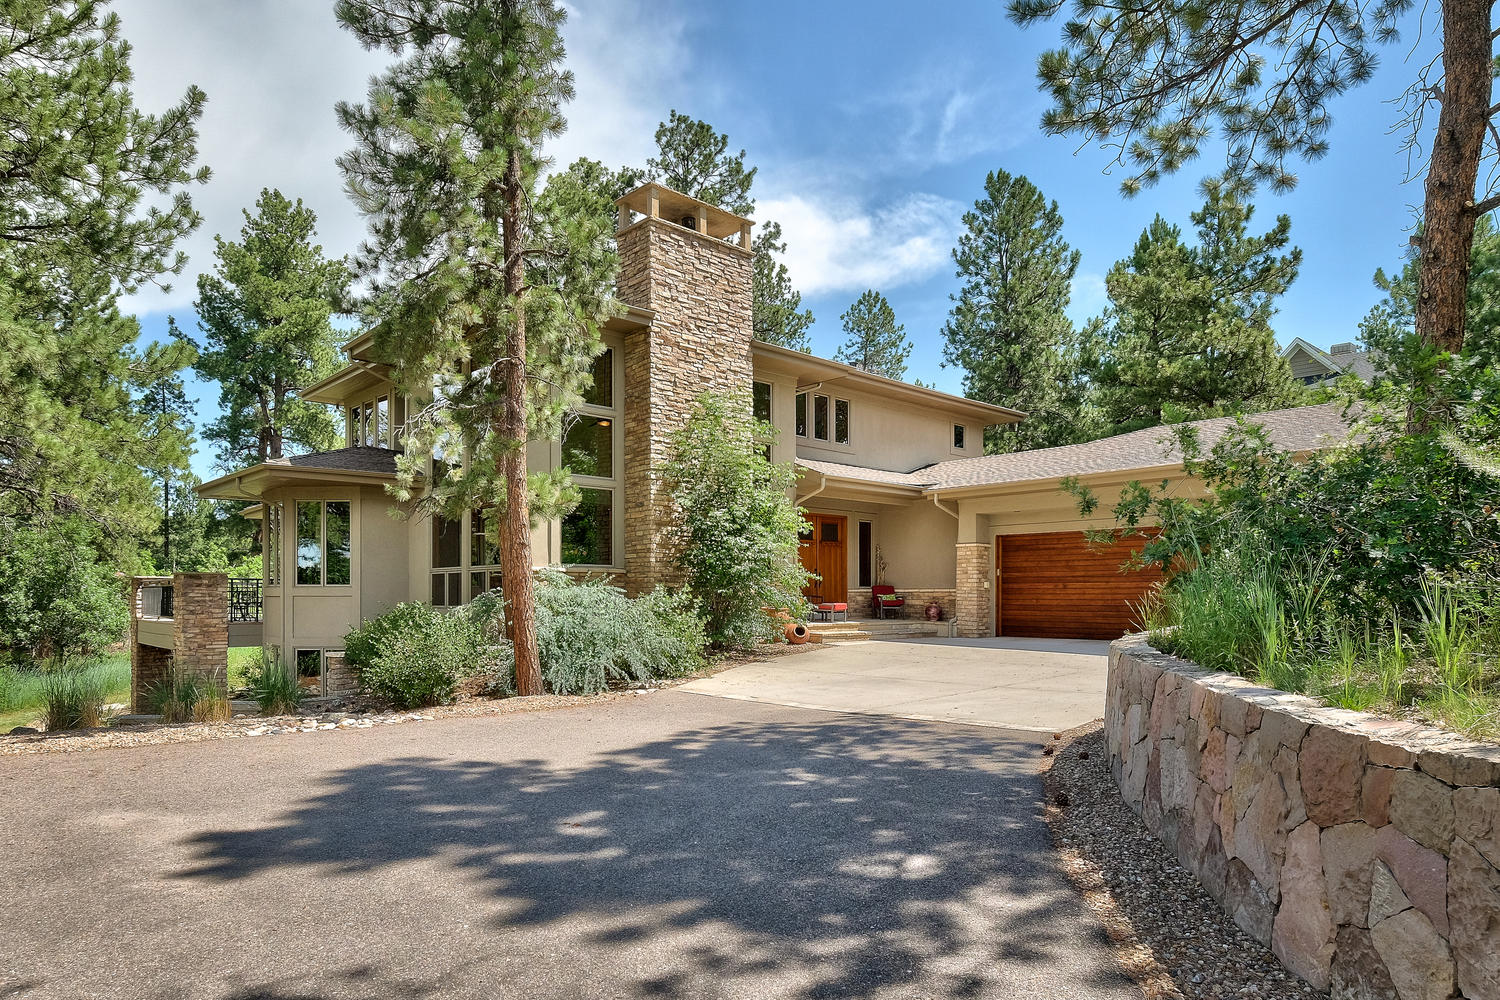 Single Family Home for Sale at 967 Country Club Pkwy Castle Pines Village, Castle Rock, Colorado, 80108 United States